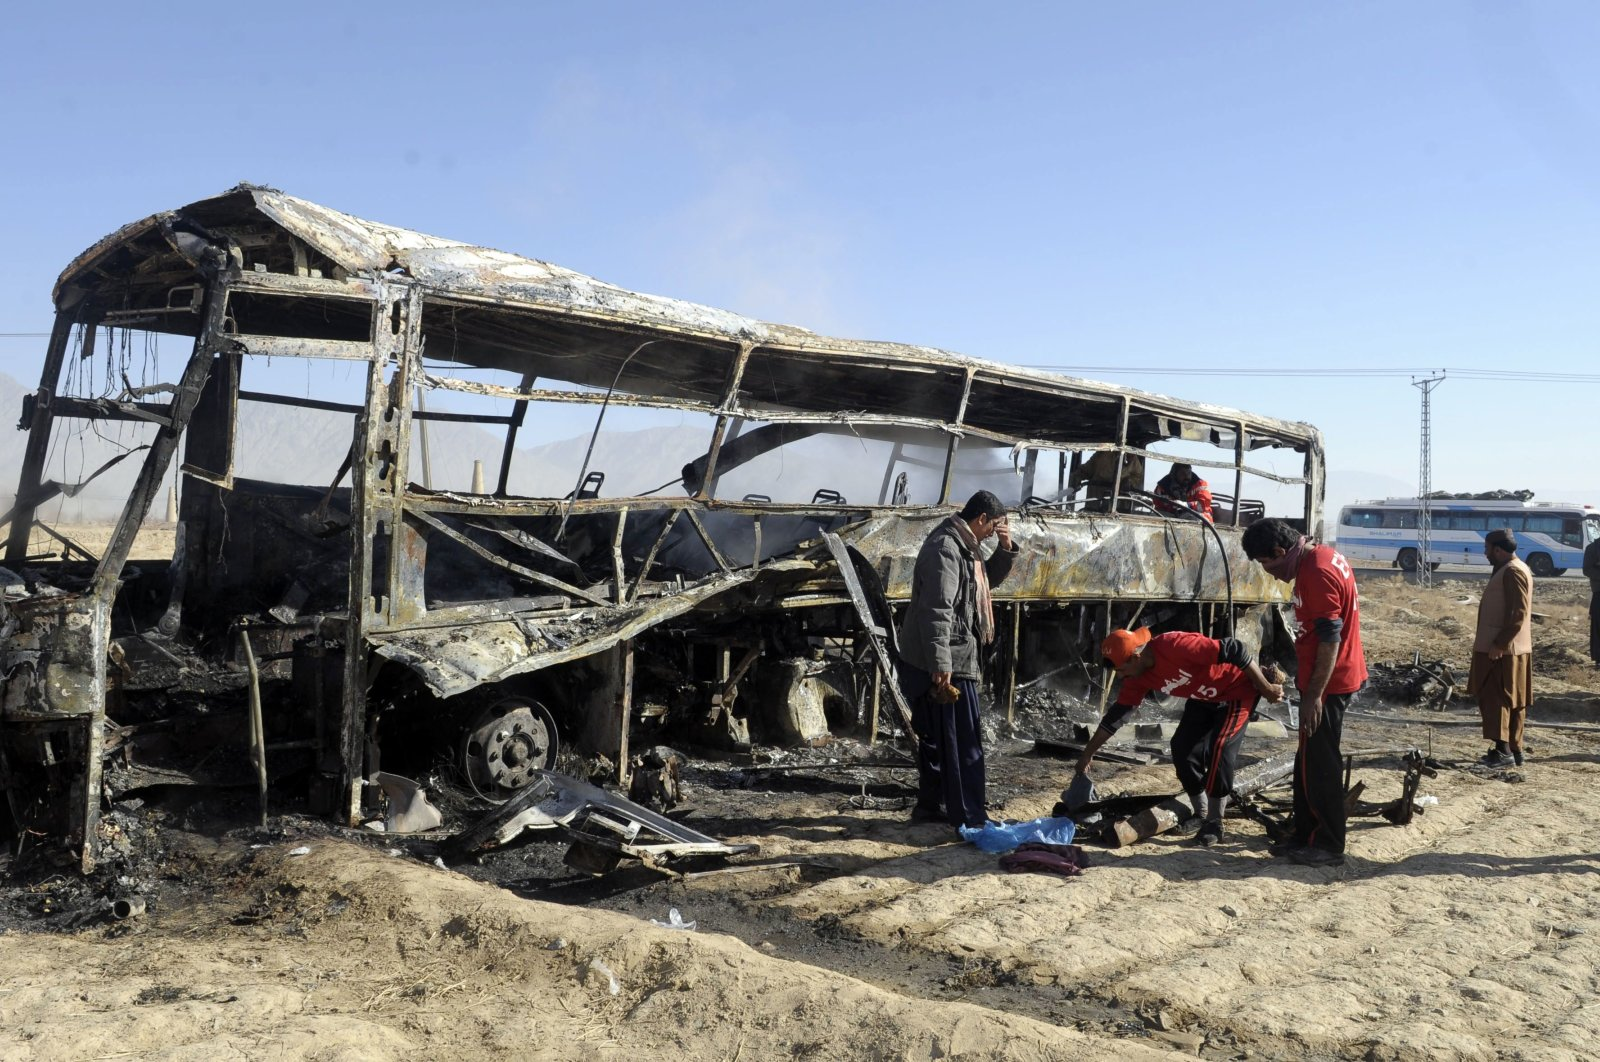 Pakistani volunteers search for victims around the bus at the site of a car bomb attack in Mastung some 30 kilometers (some 19 miles) south of Quetta, Pakistan, on Dec. 30, 2012. (AFP Photo)